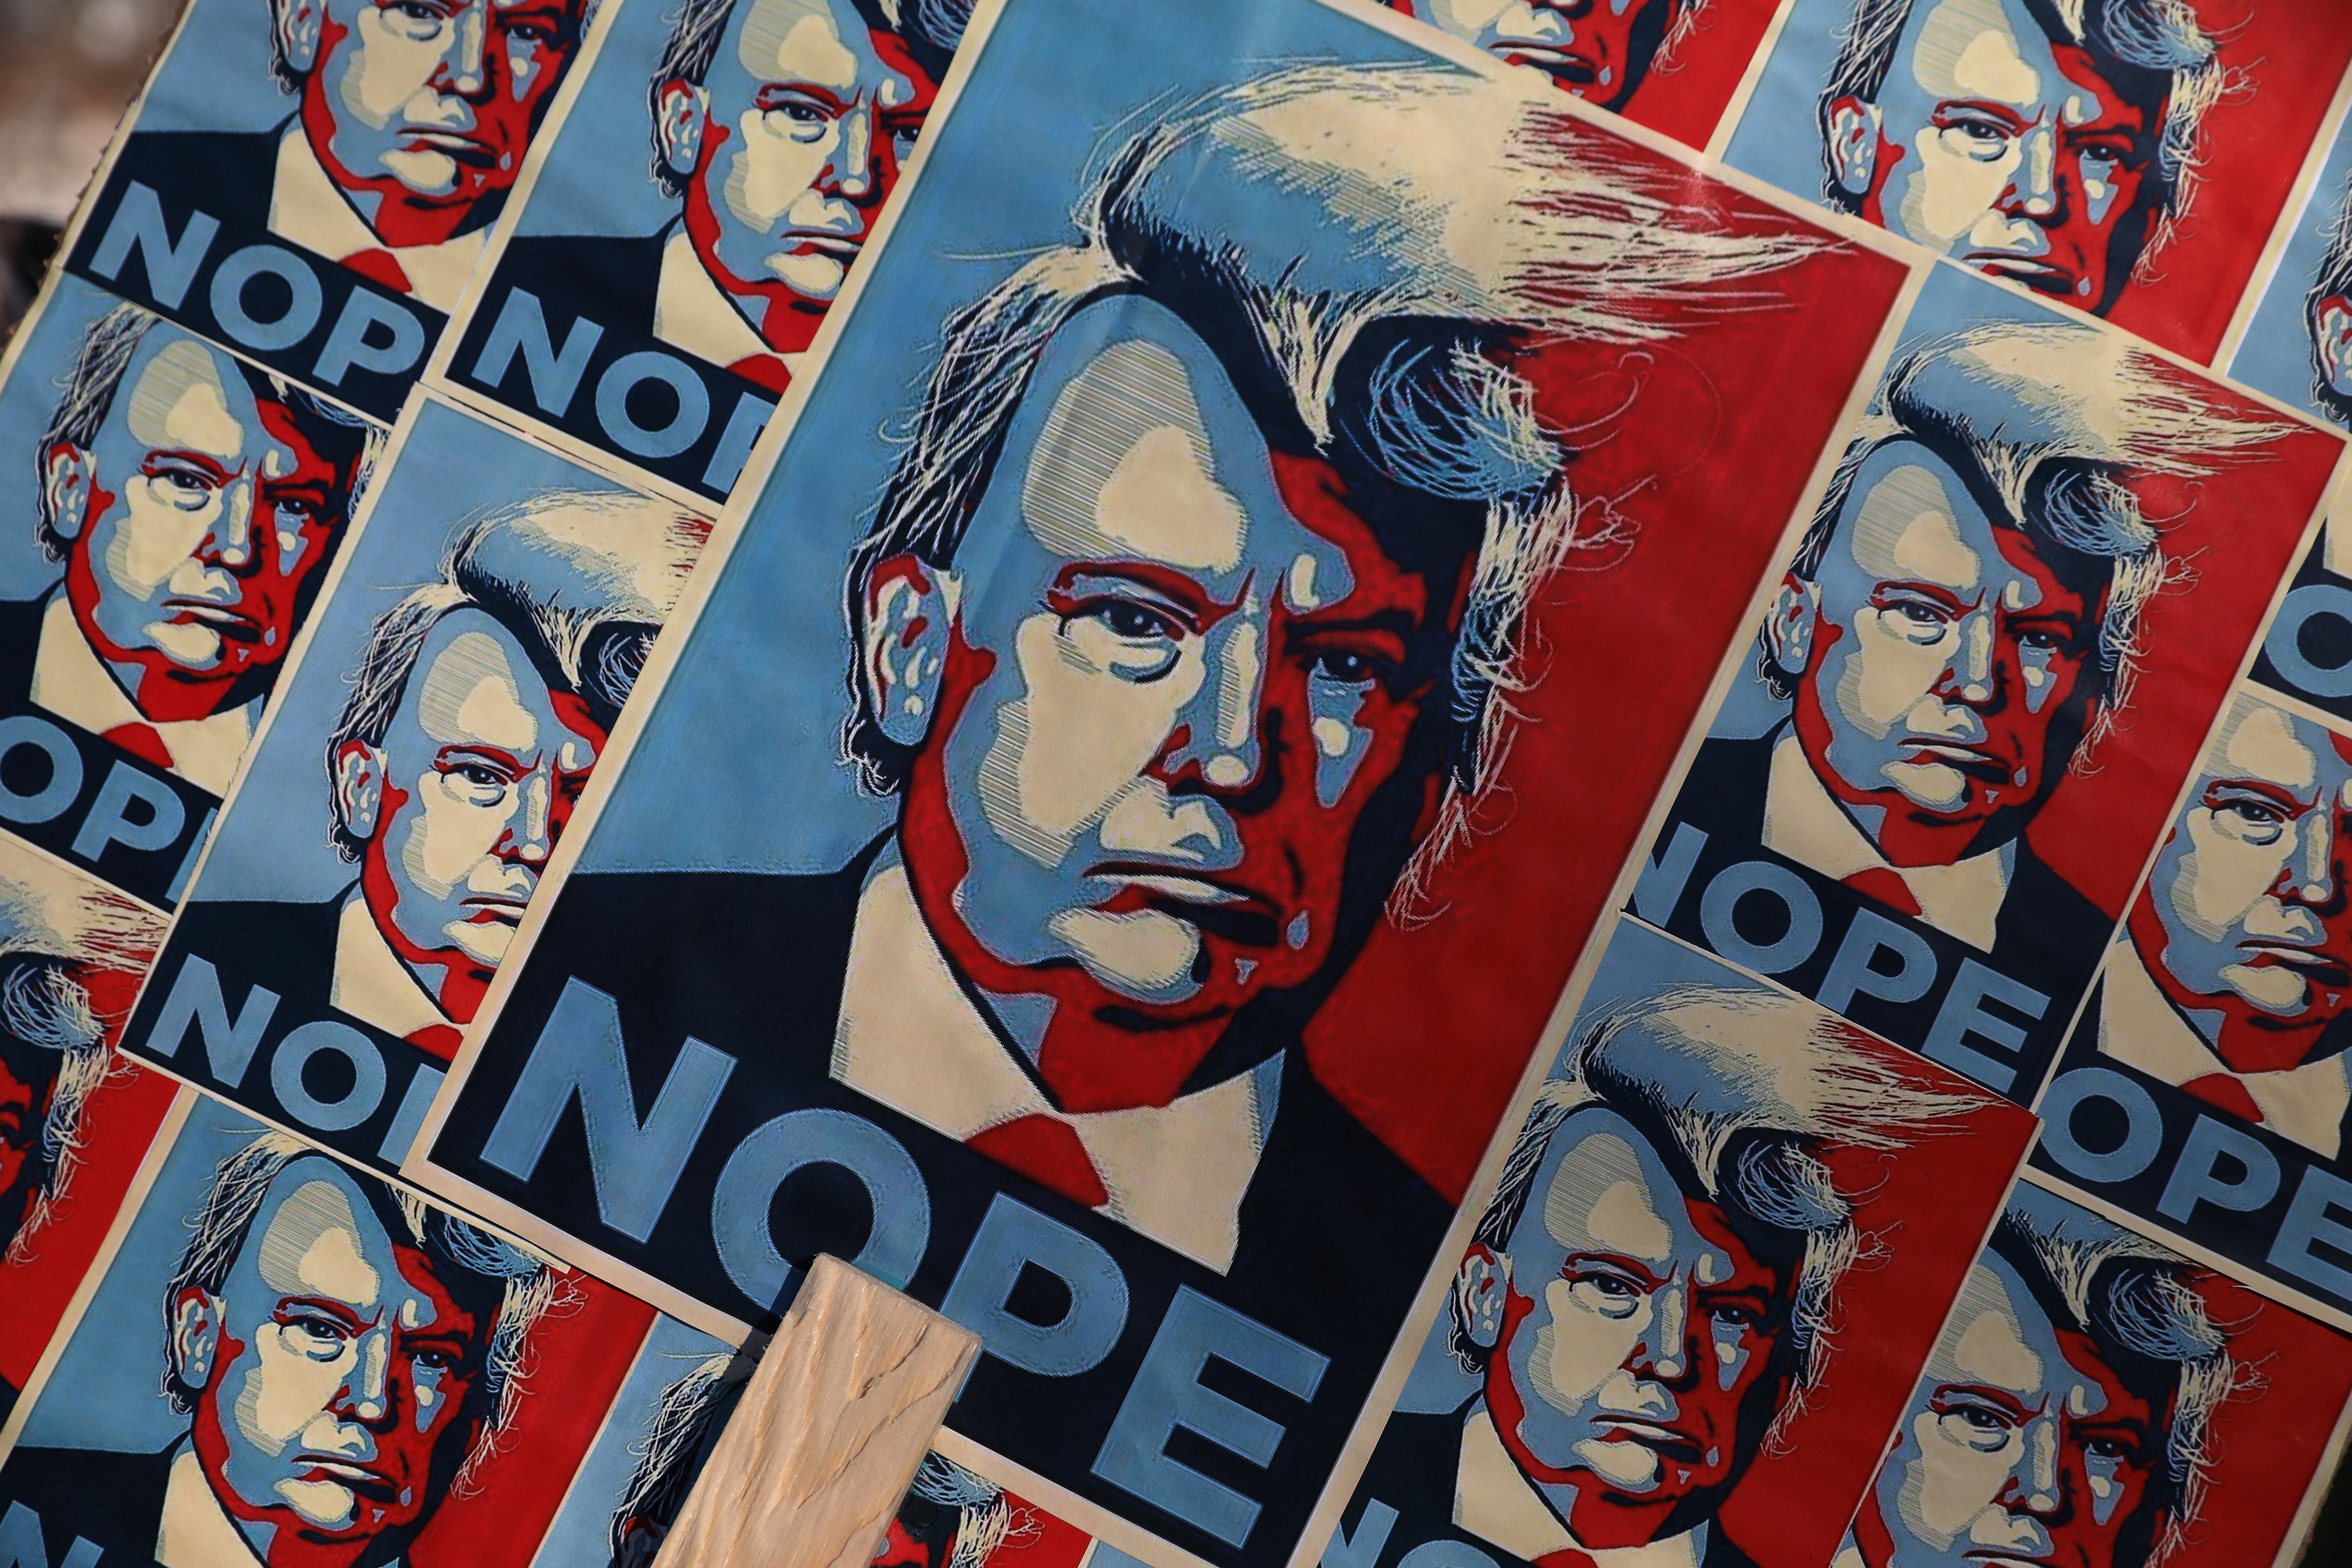 Posters showing Trump's image